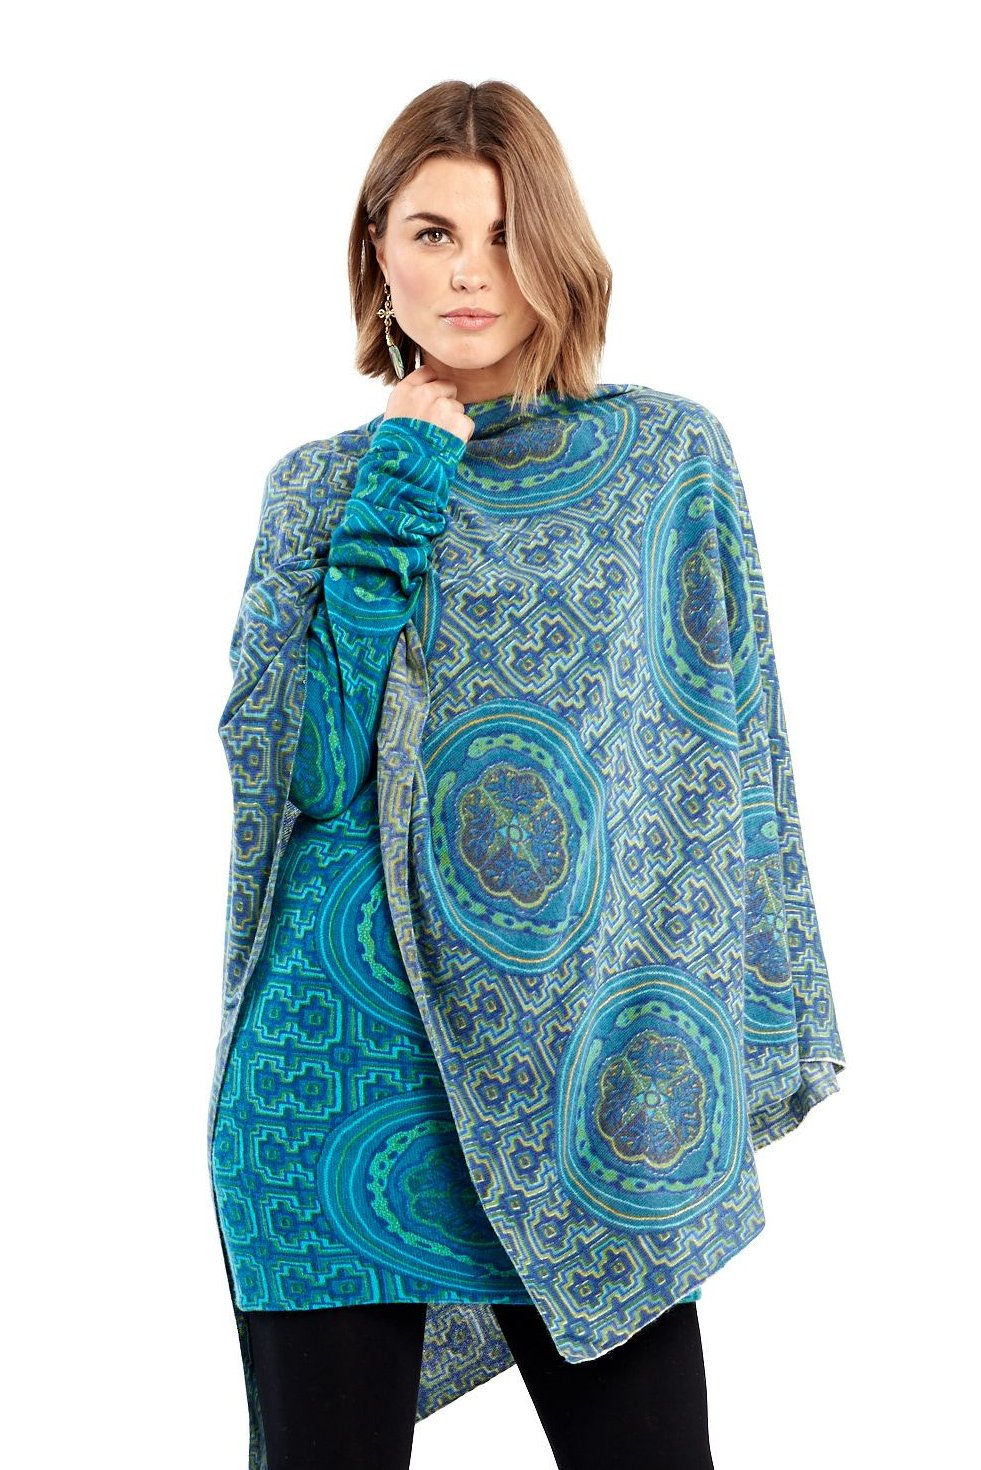 Luxury Hand Printed Shipibo Pure Cashmere Poncho Blue/Turquoise